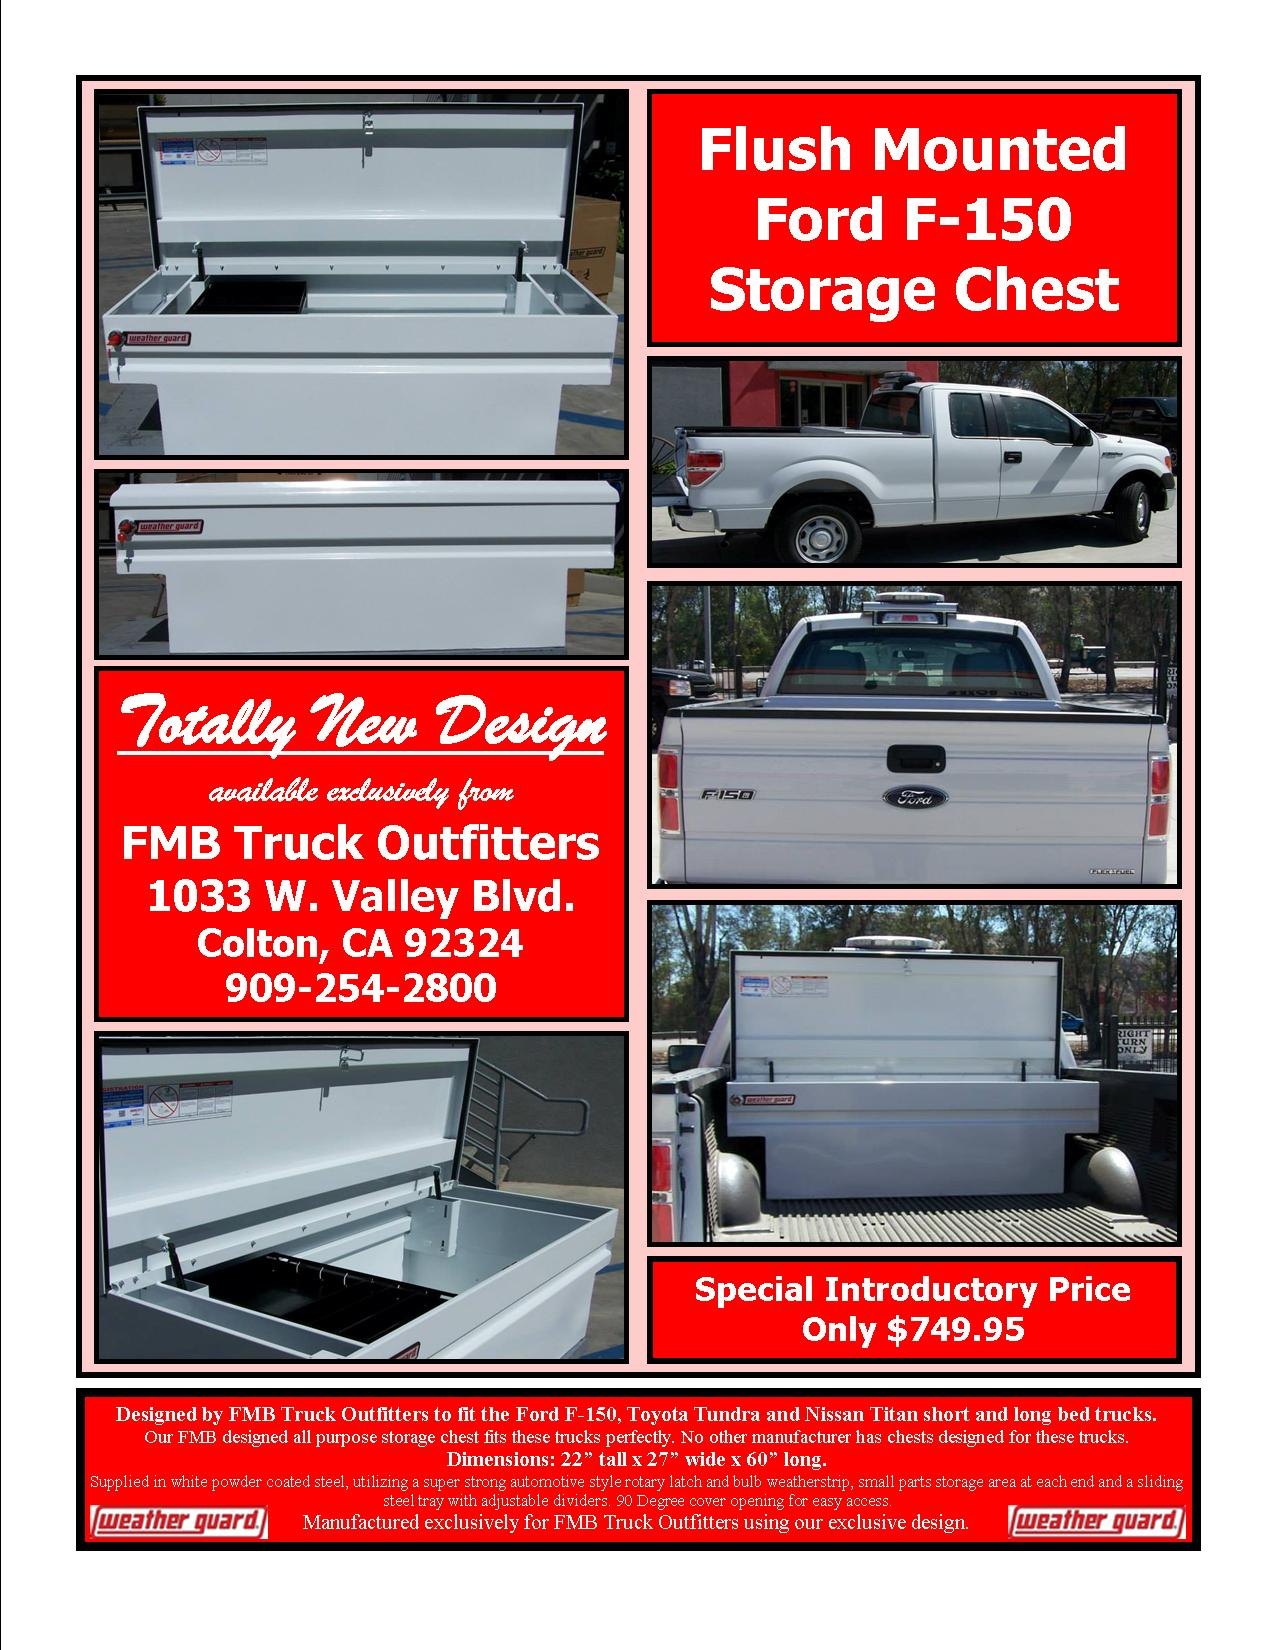 fmb-chest-f-150-retail.jpg